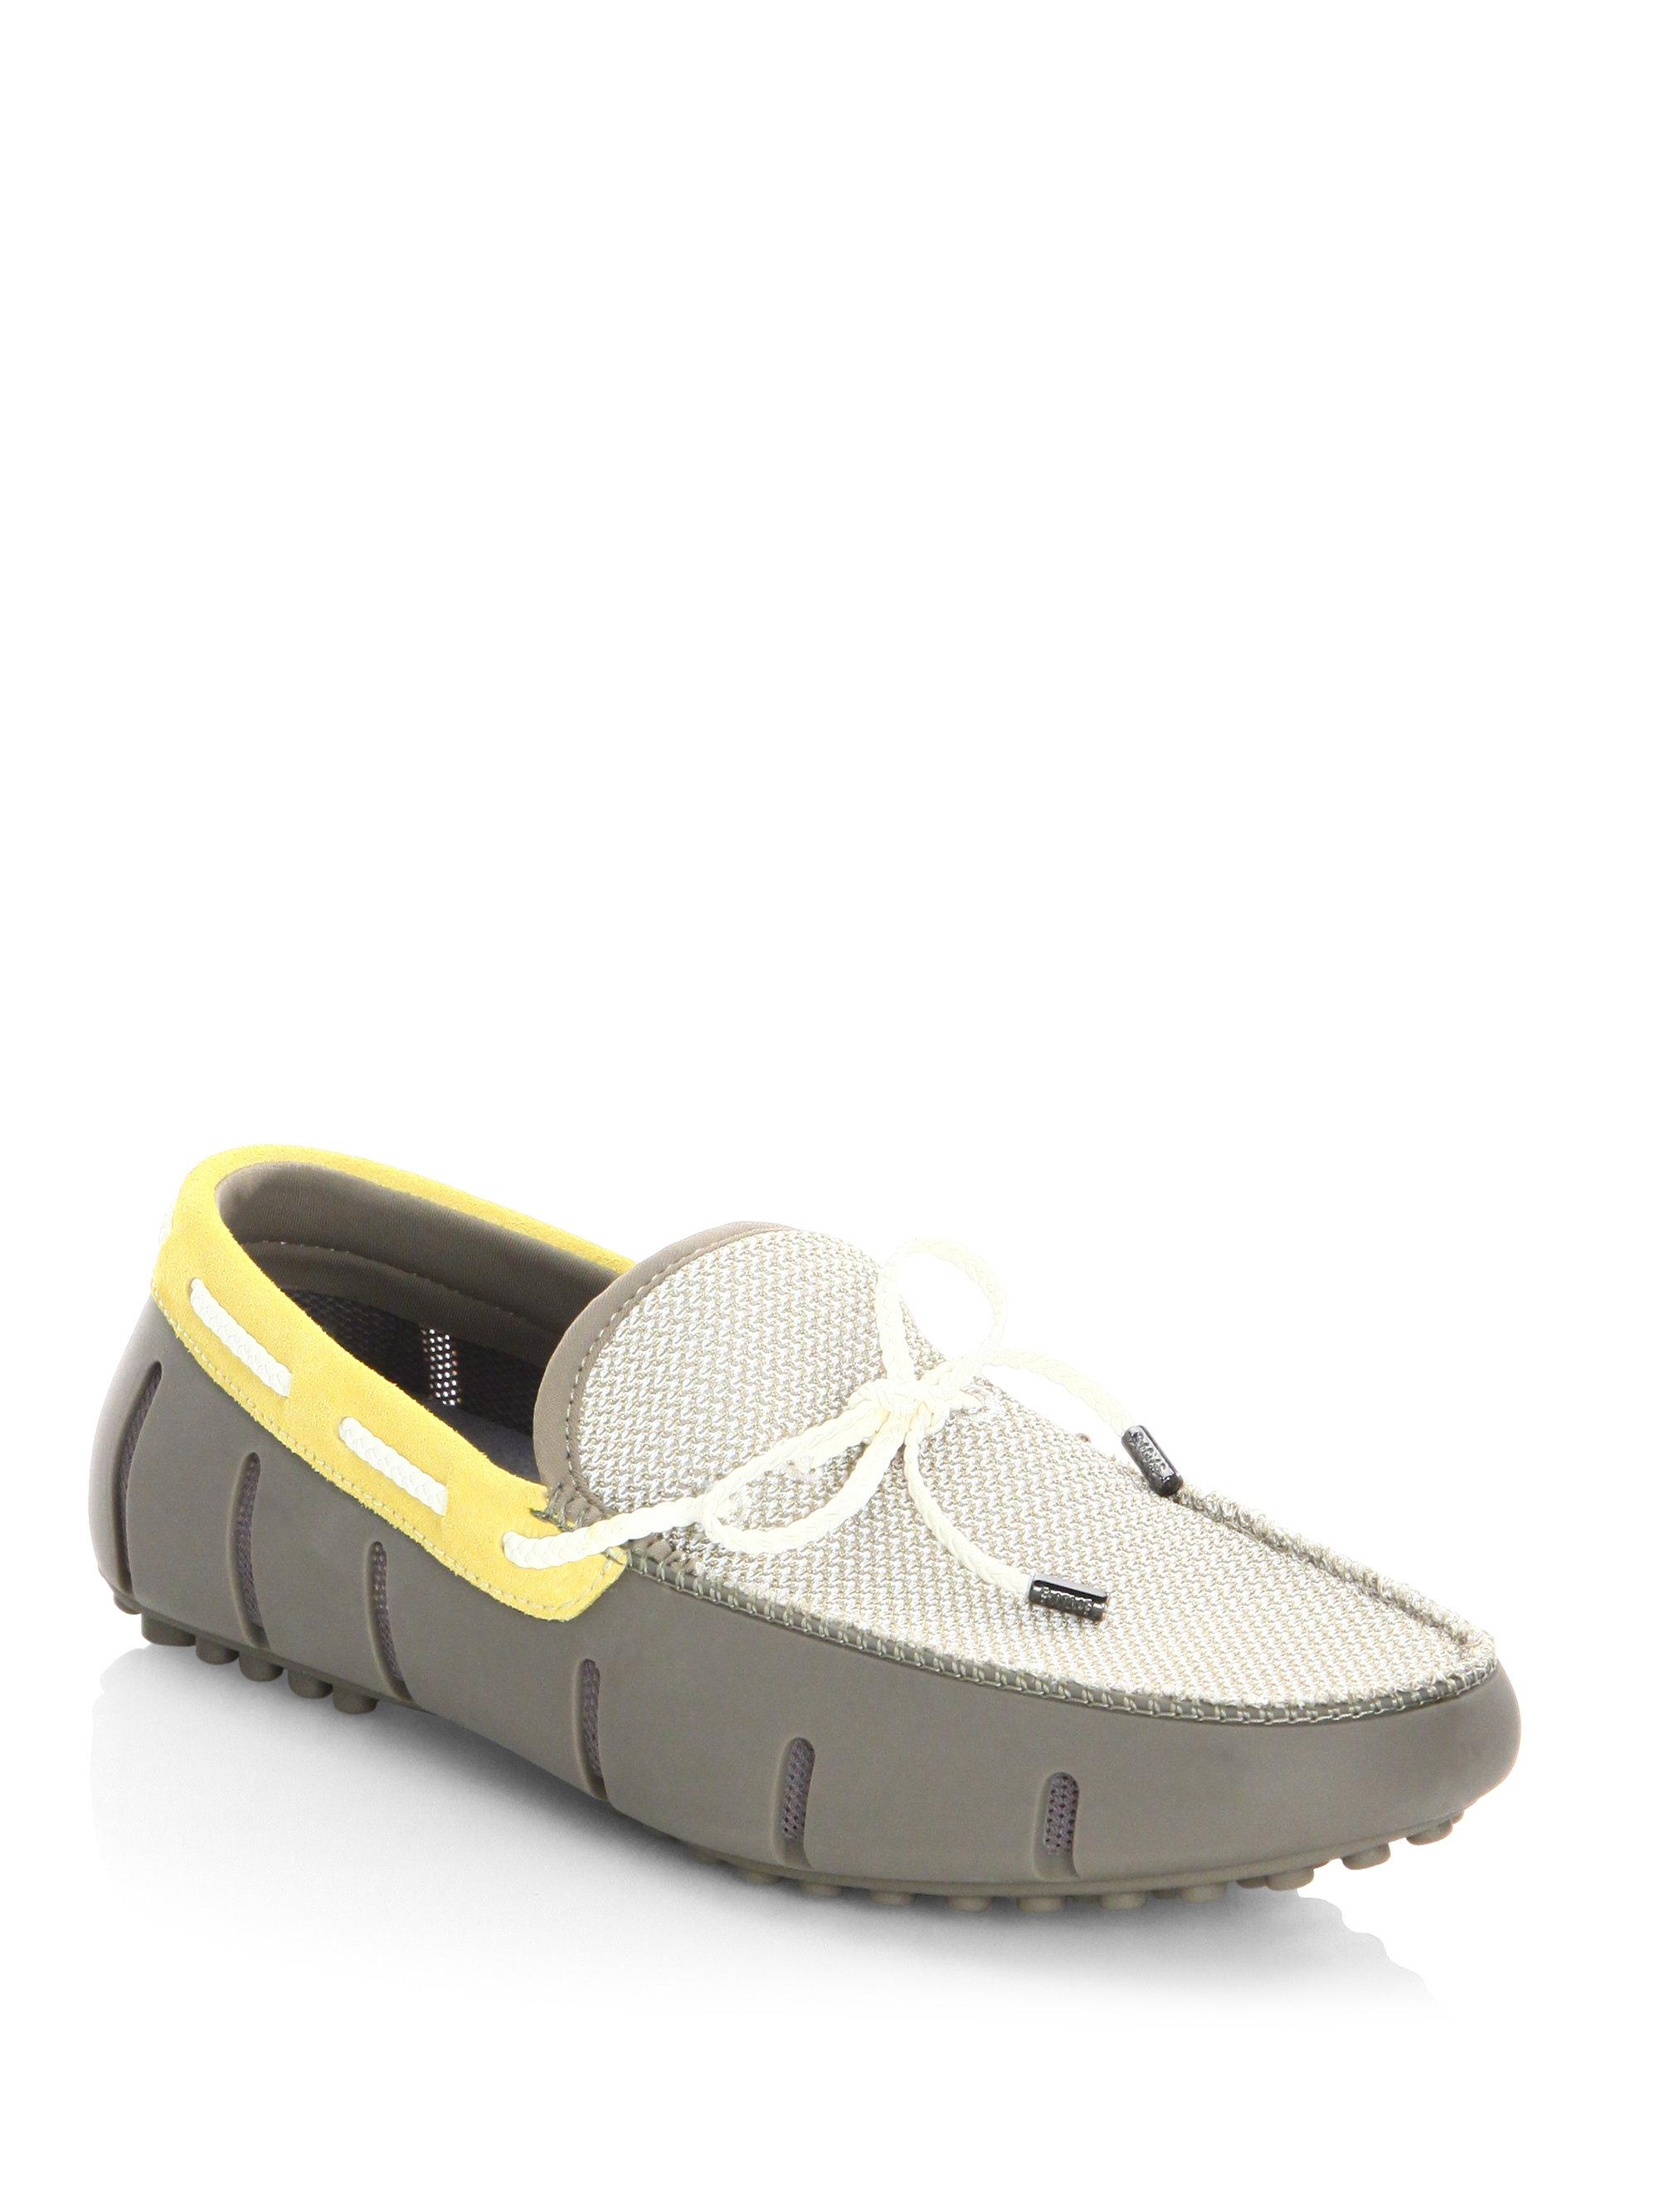 Swims Slip-Resistant Moccasins DfNy2